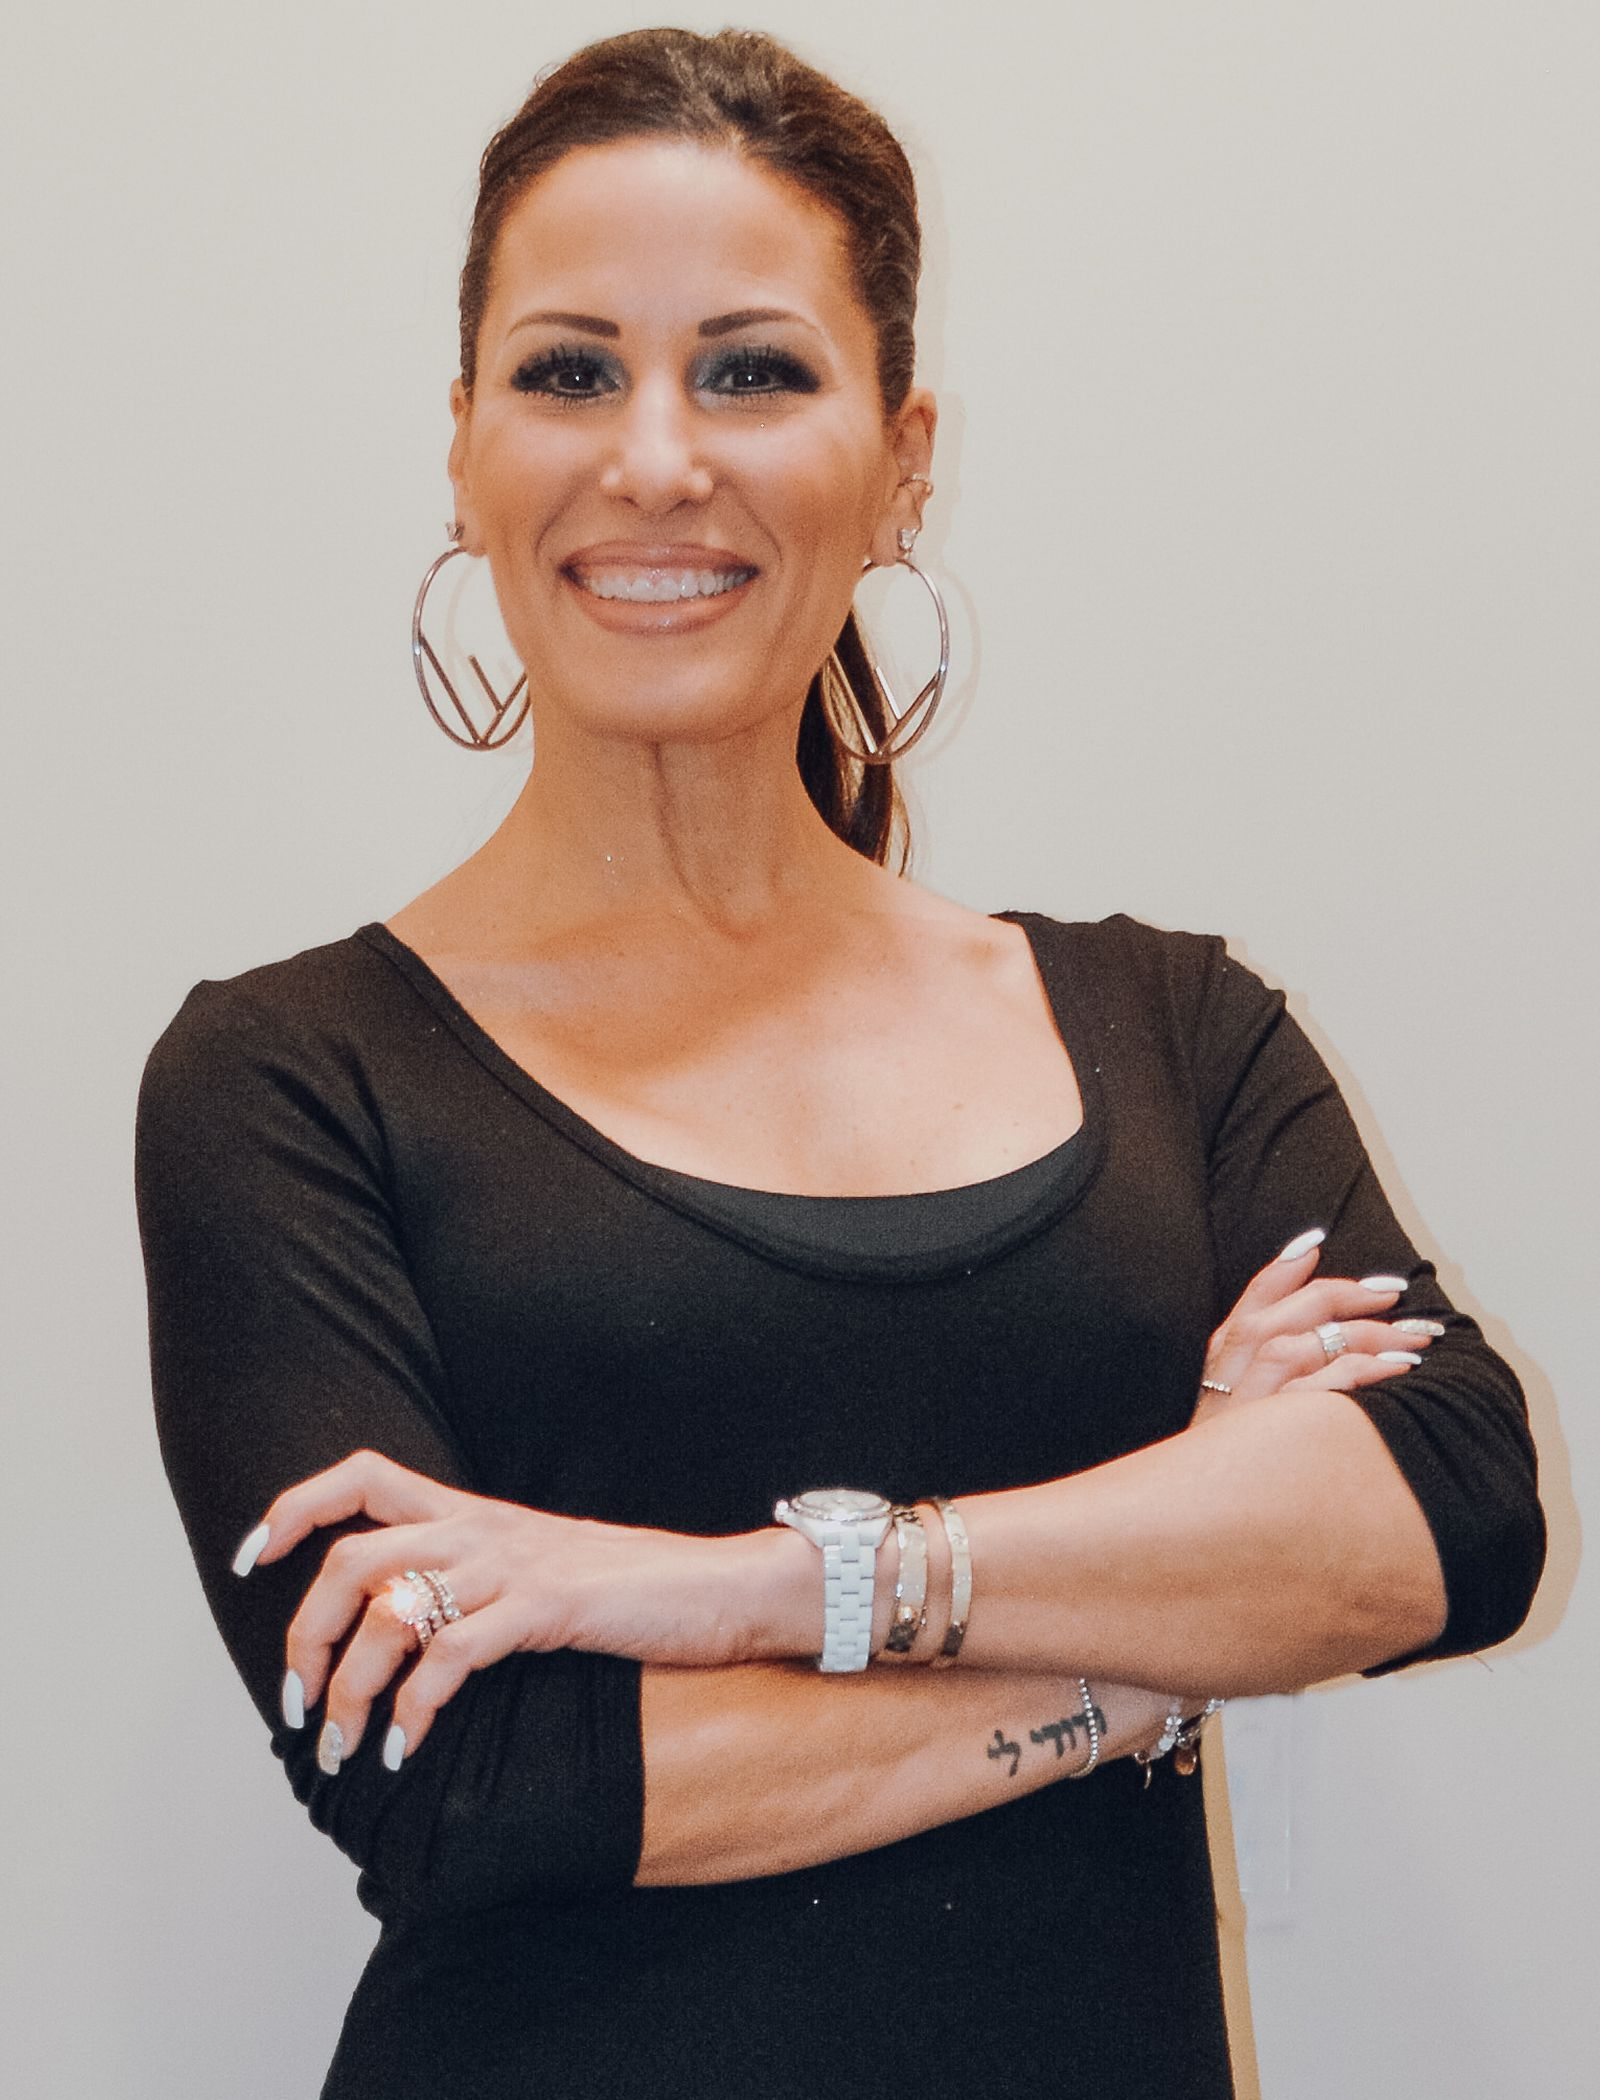 Michele DiMeo, Squisito Franchise's President and COO of the Monte Restaurant Development Group